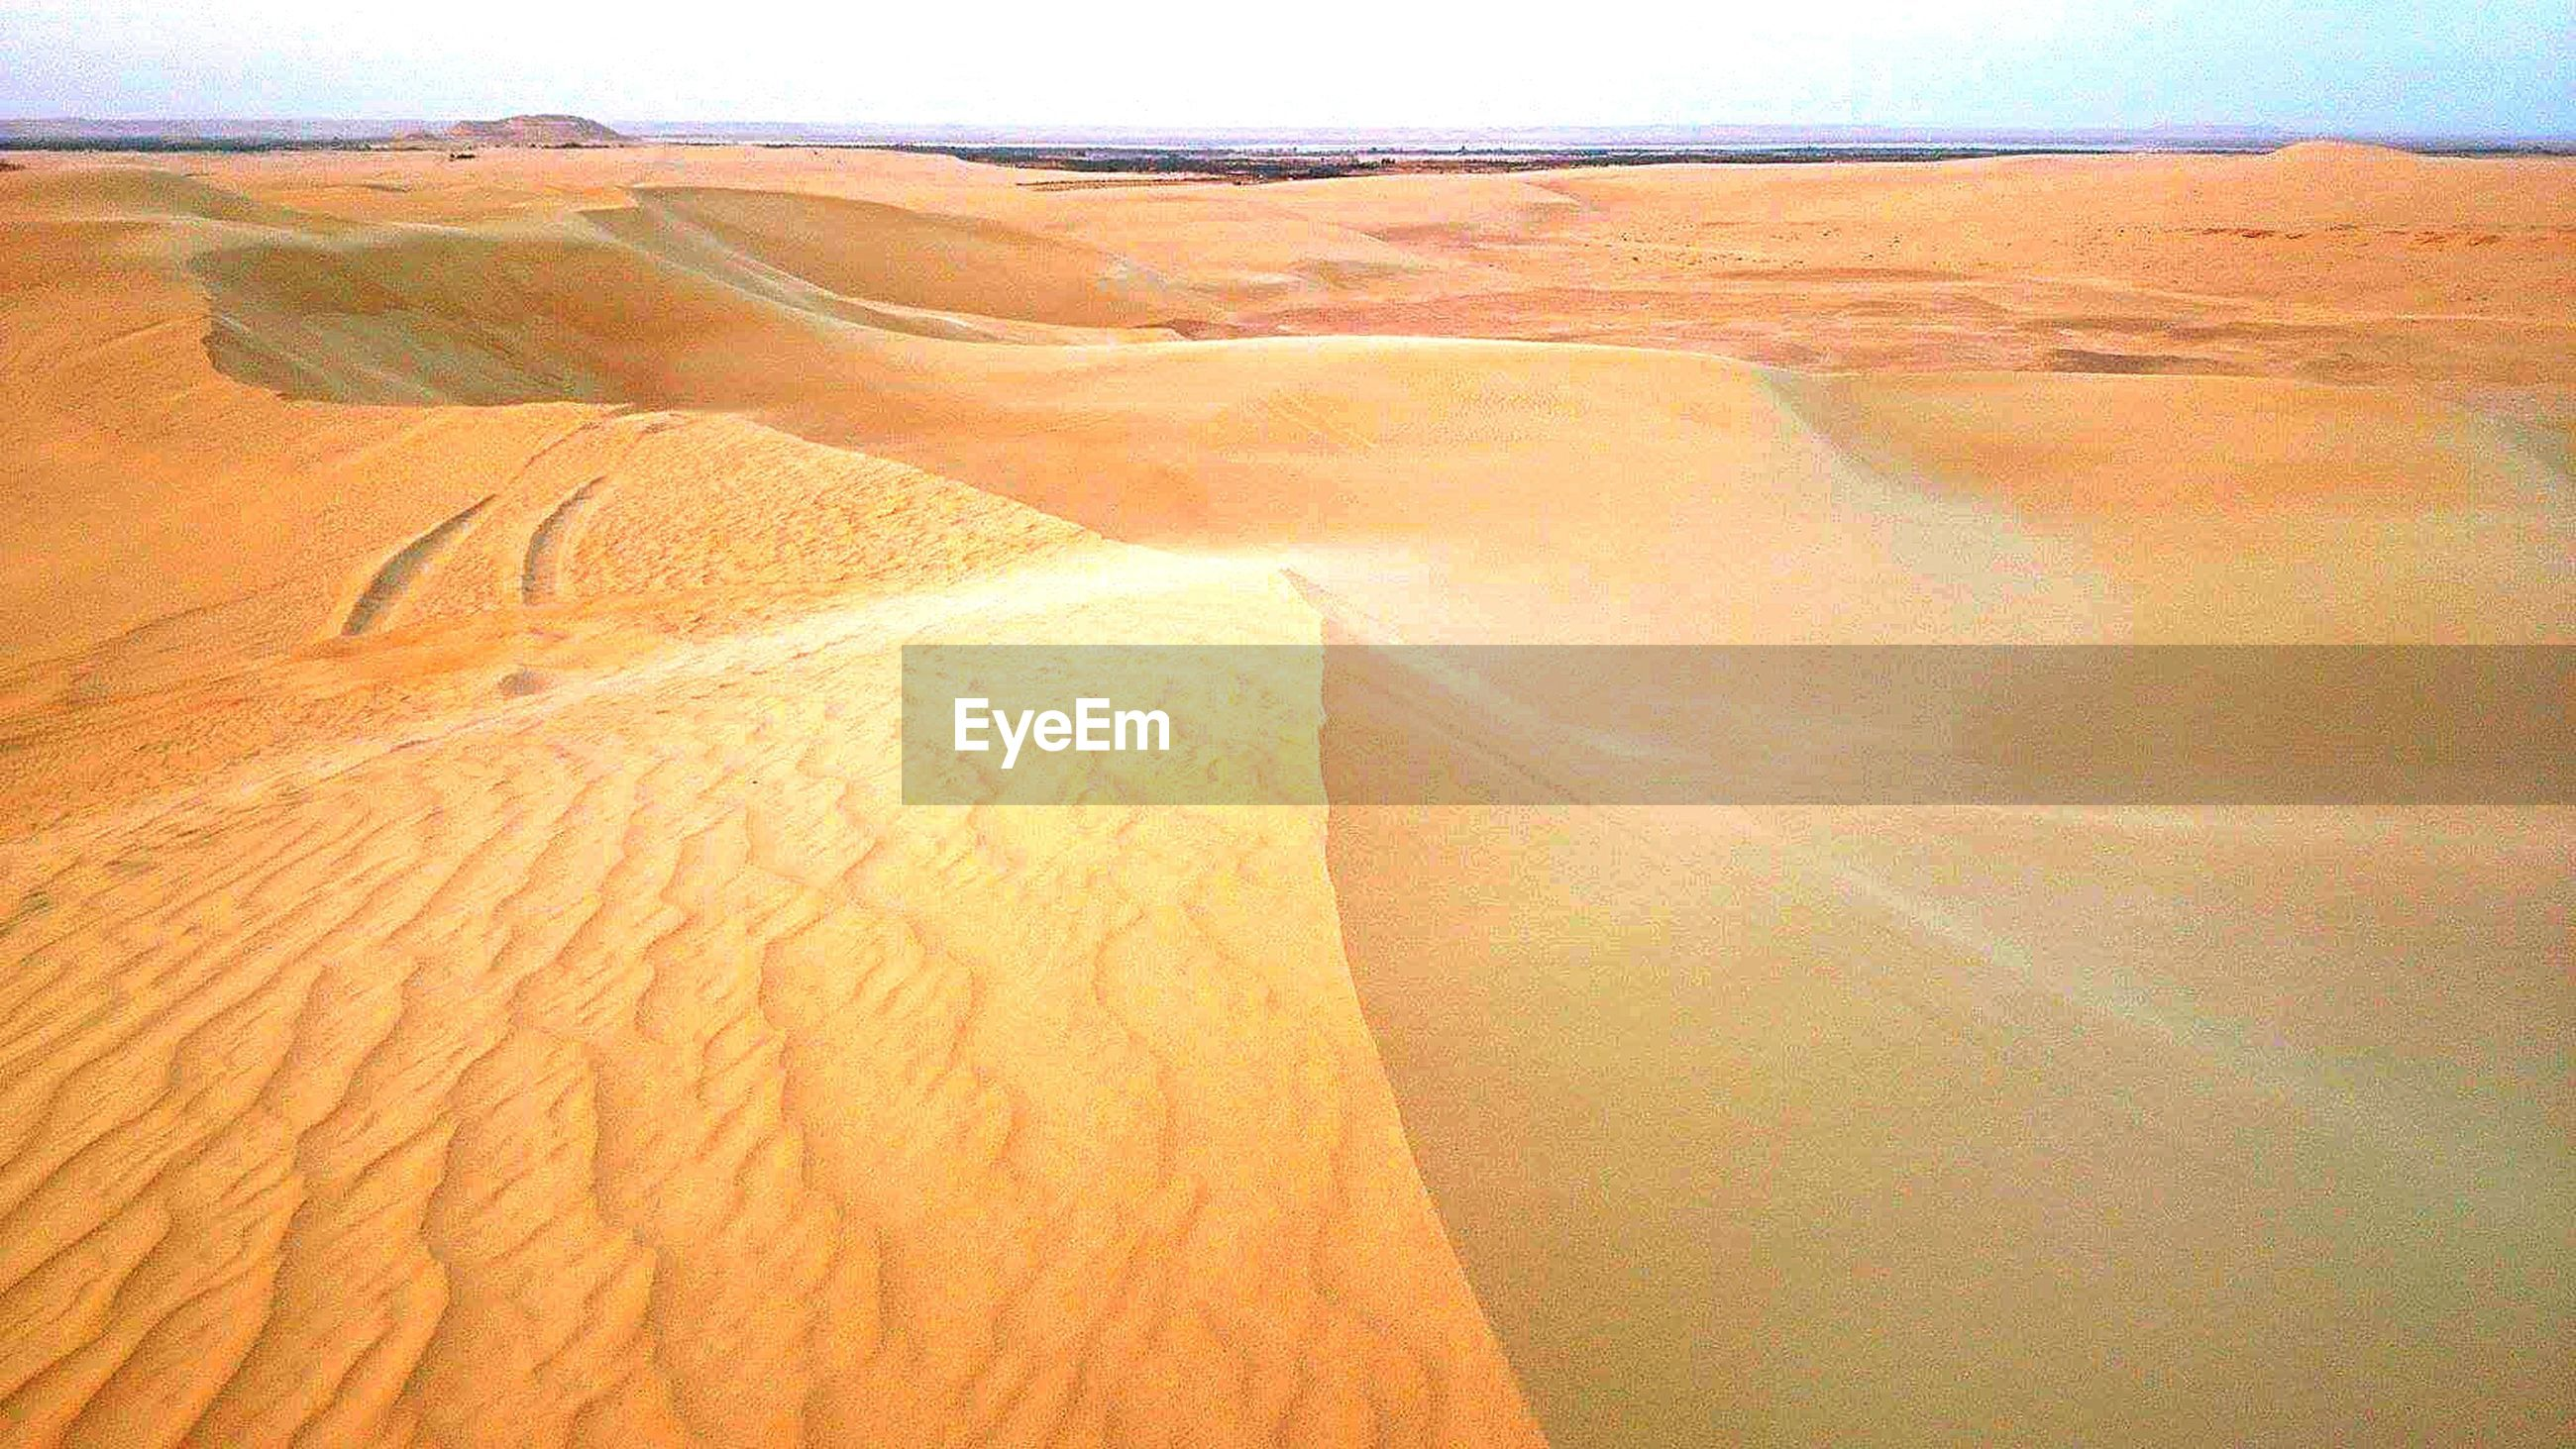 landscape, arid climate, nature, physical geography, outdoors, scenics, day, sand dune, desert, sand, beauty in nature, travel destinations, no people, tranquility, aerial view, sky